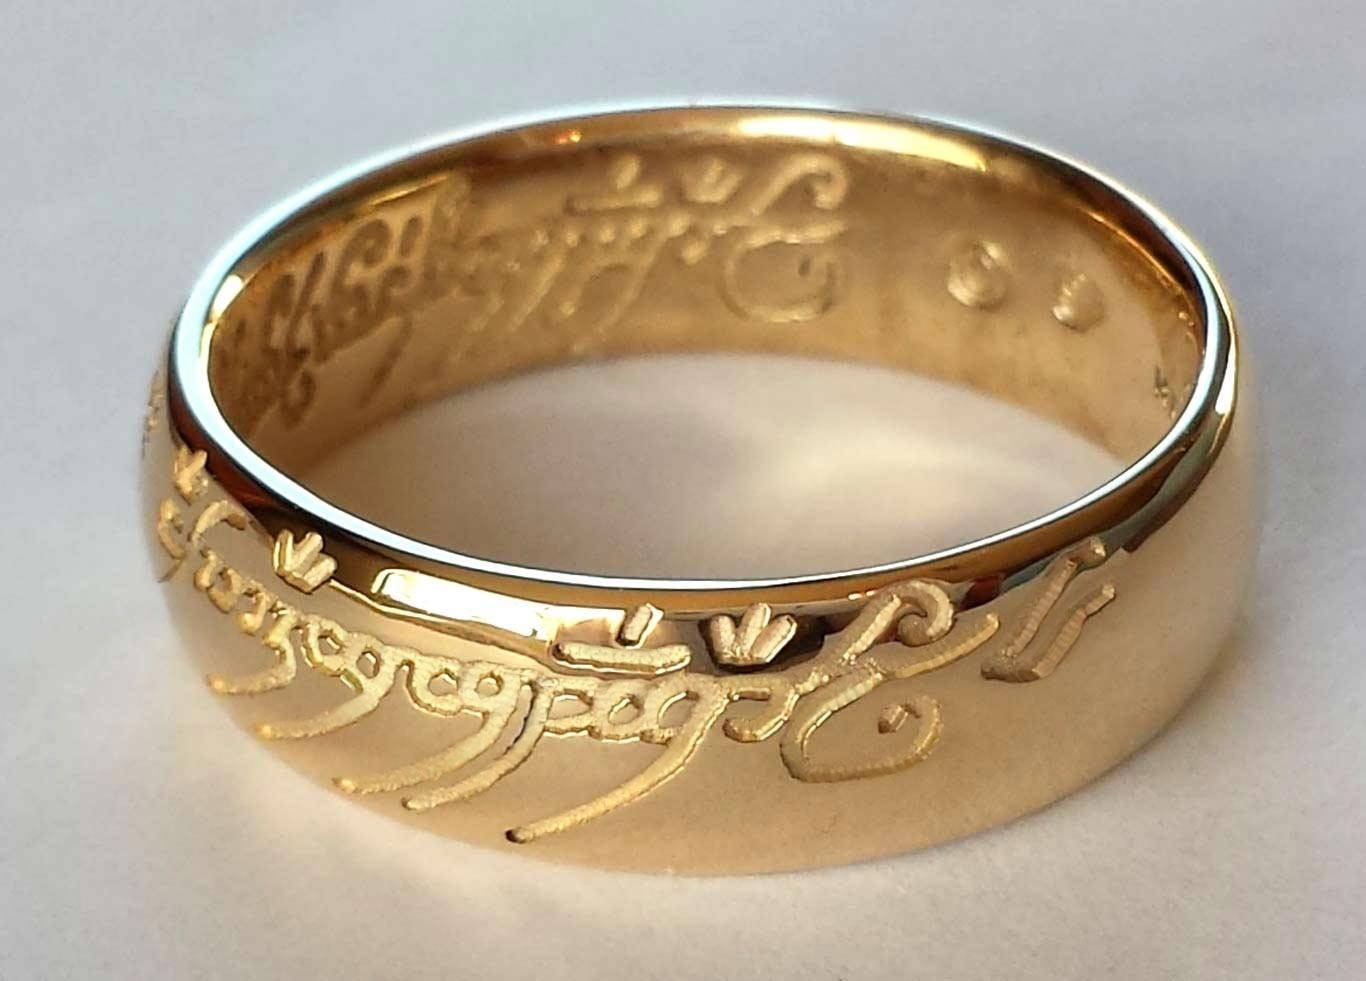 Photo Gallery of Lord Of The Rings Wedding Bands Viewing 10 of 15